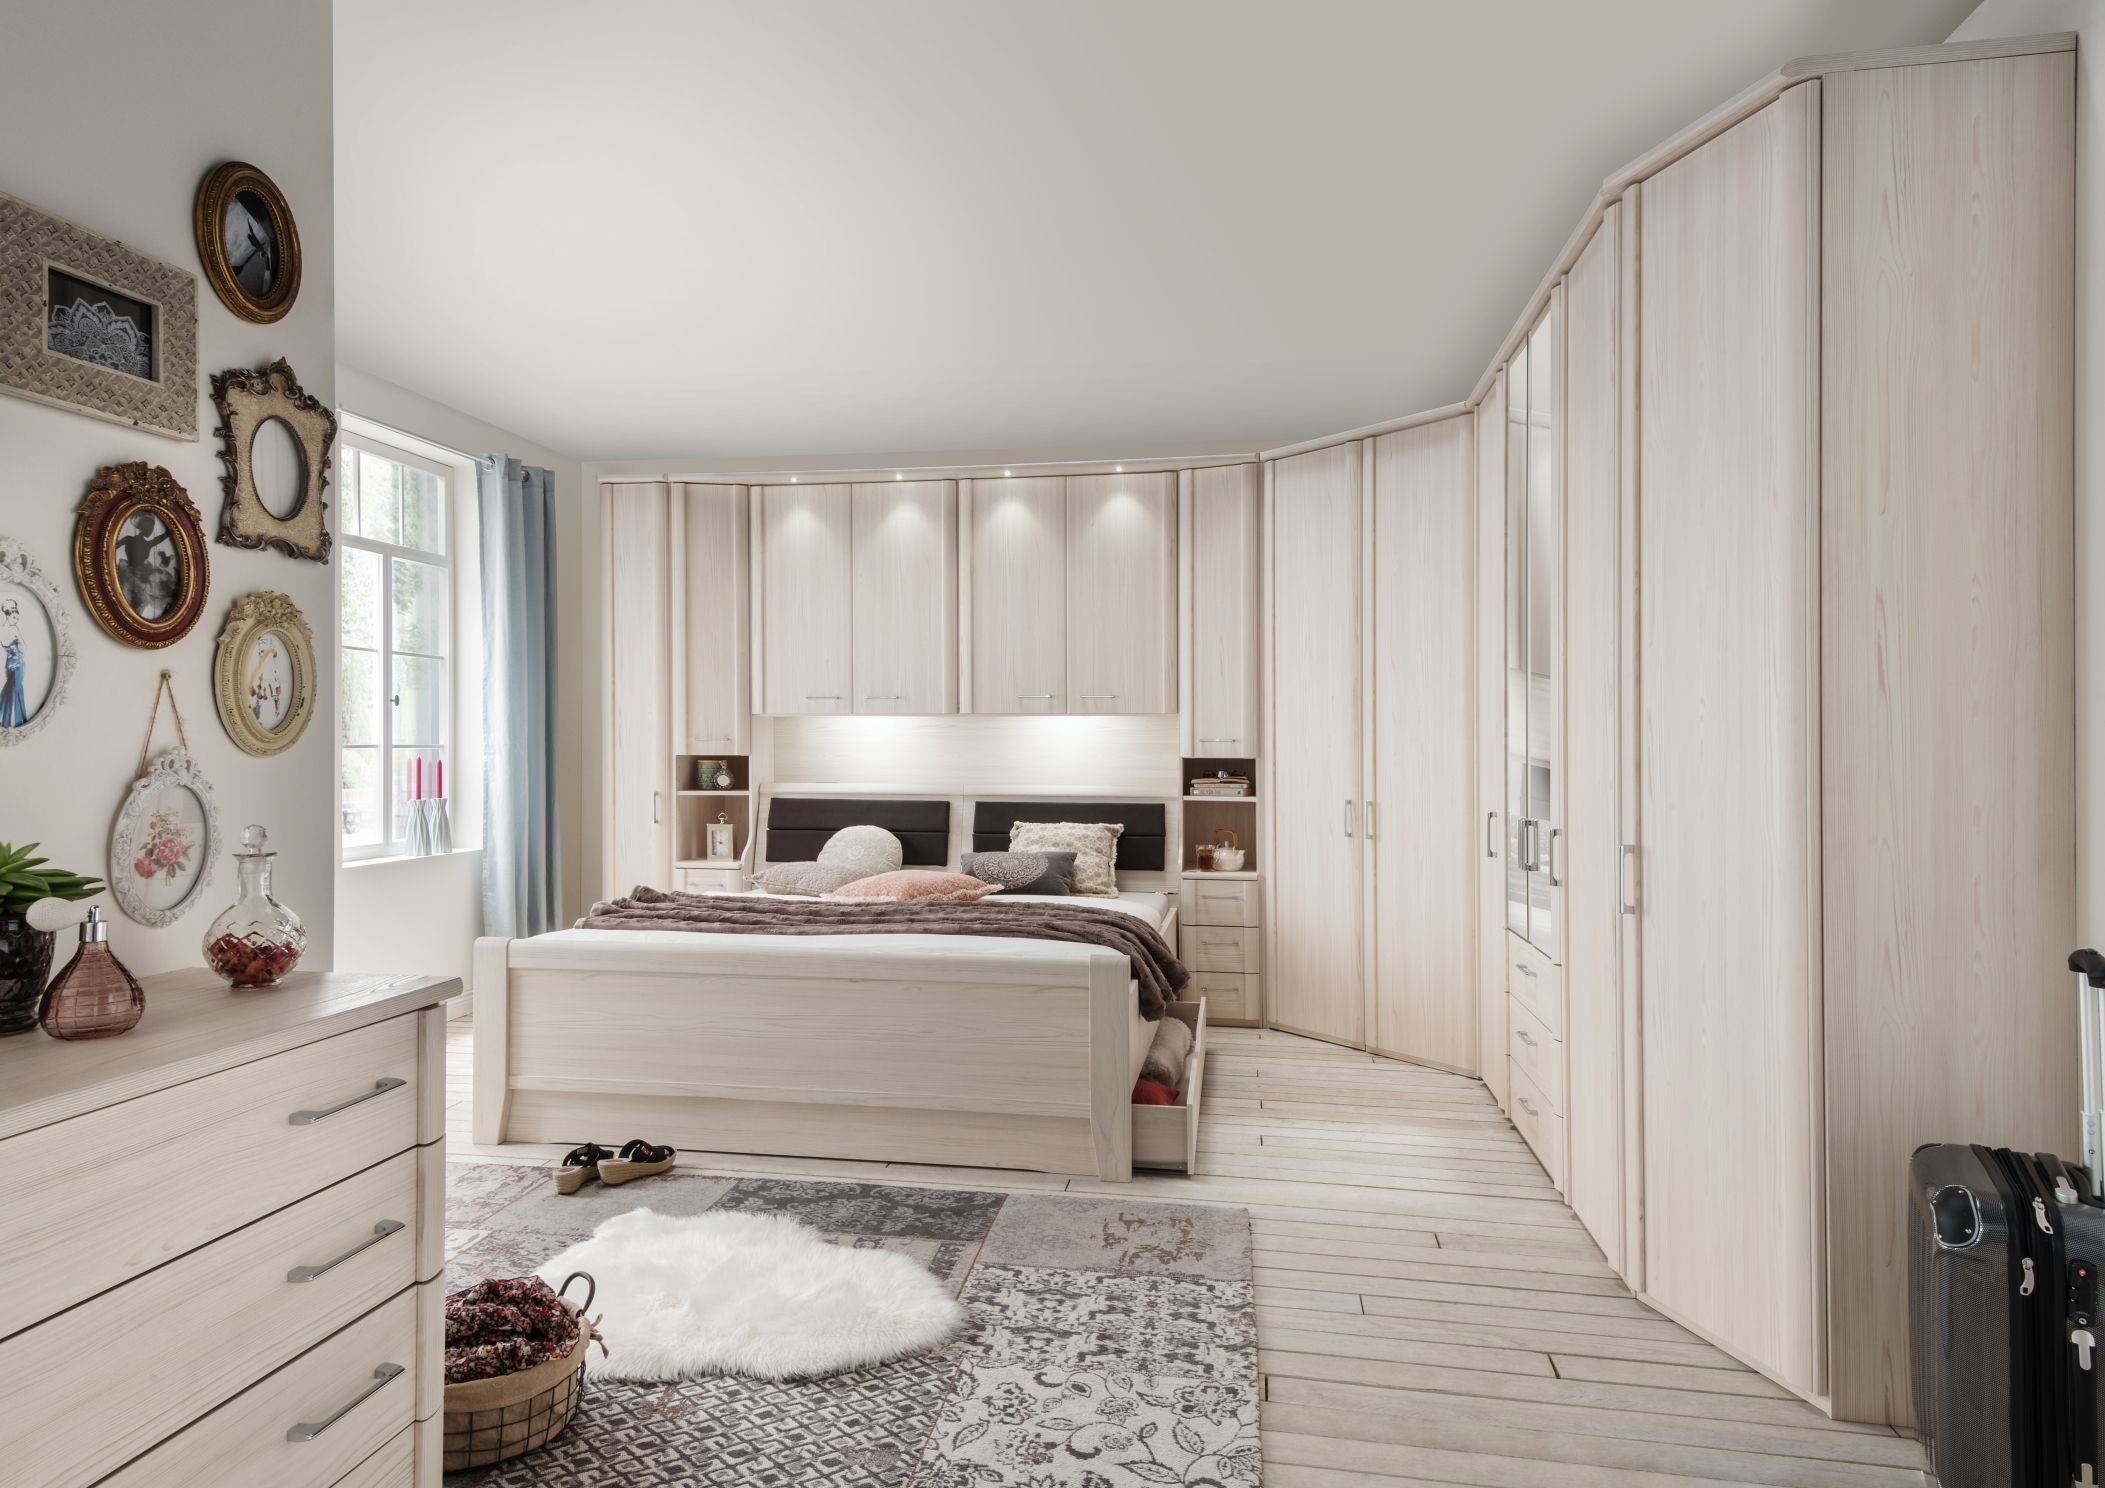 bedroom furniture, free standing furniture that